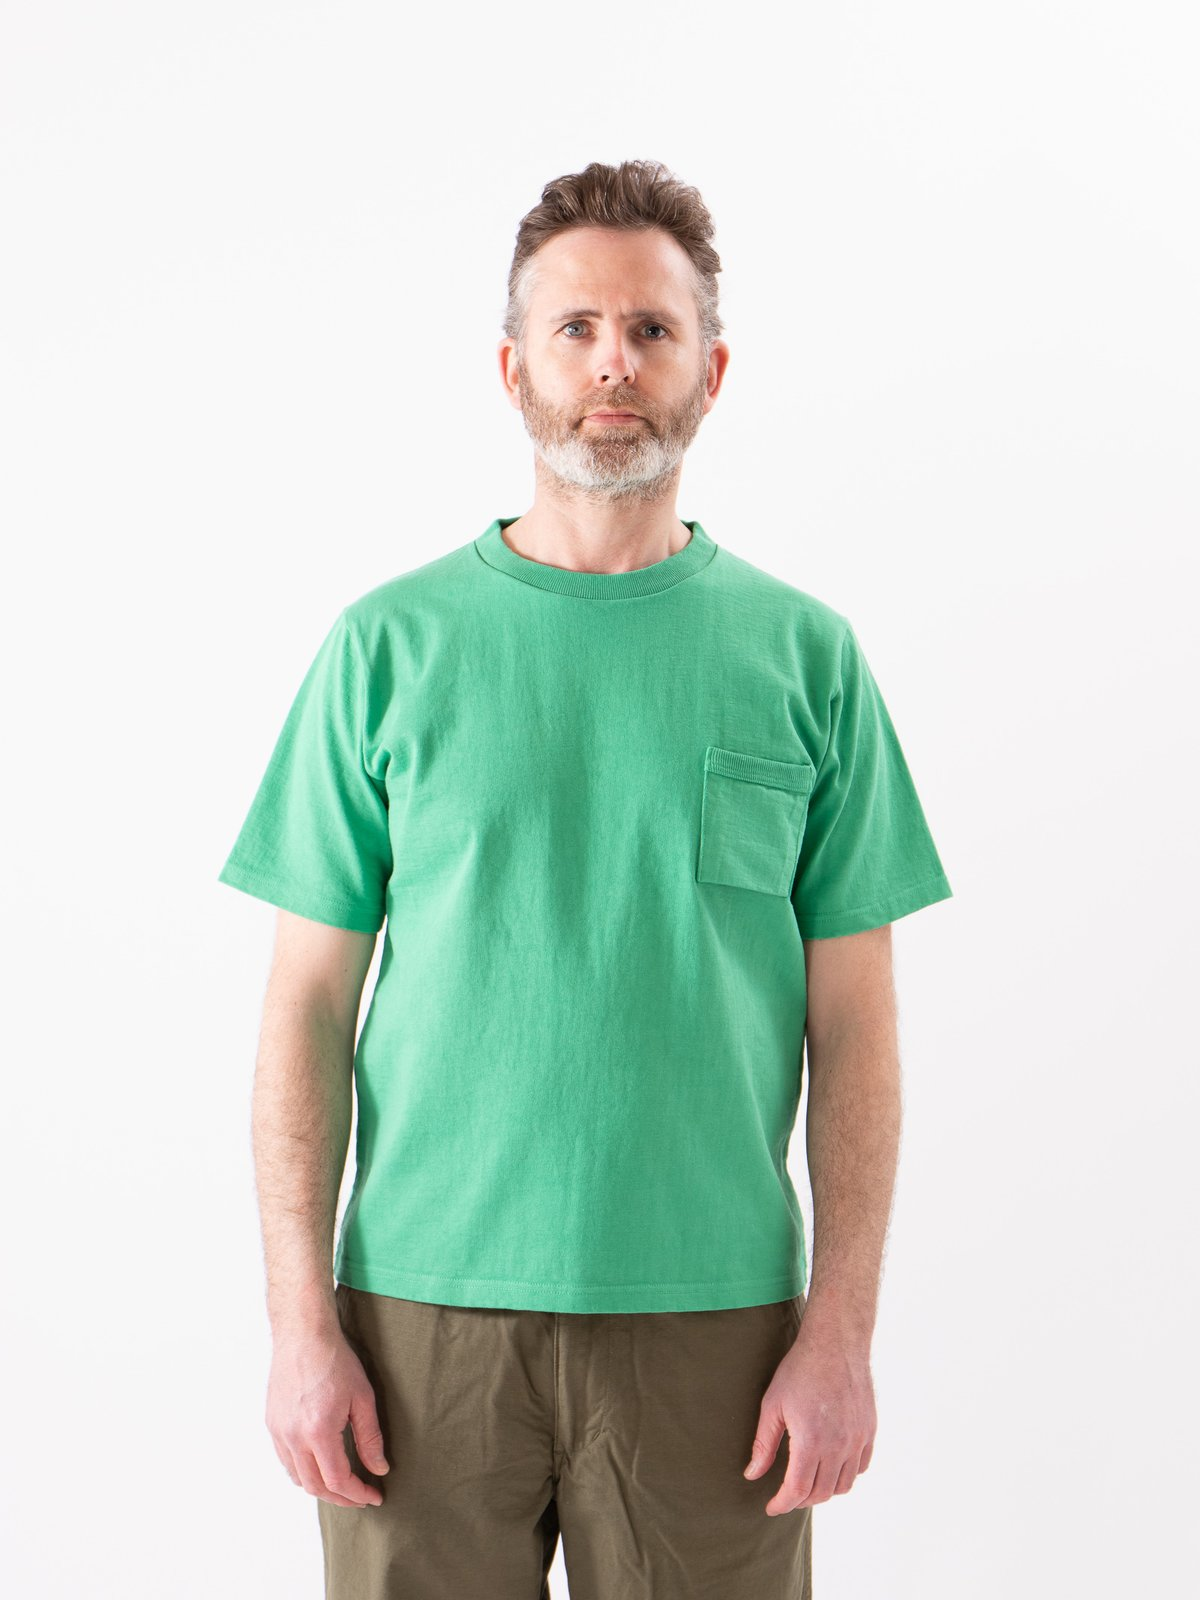 Kelly Green Dotsume Pocket T–Shirt - Image 2